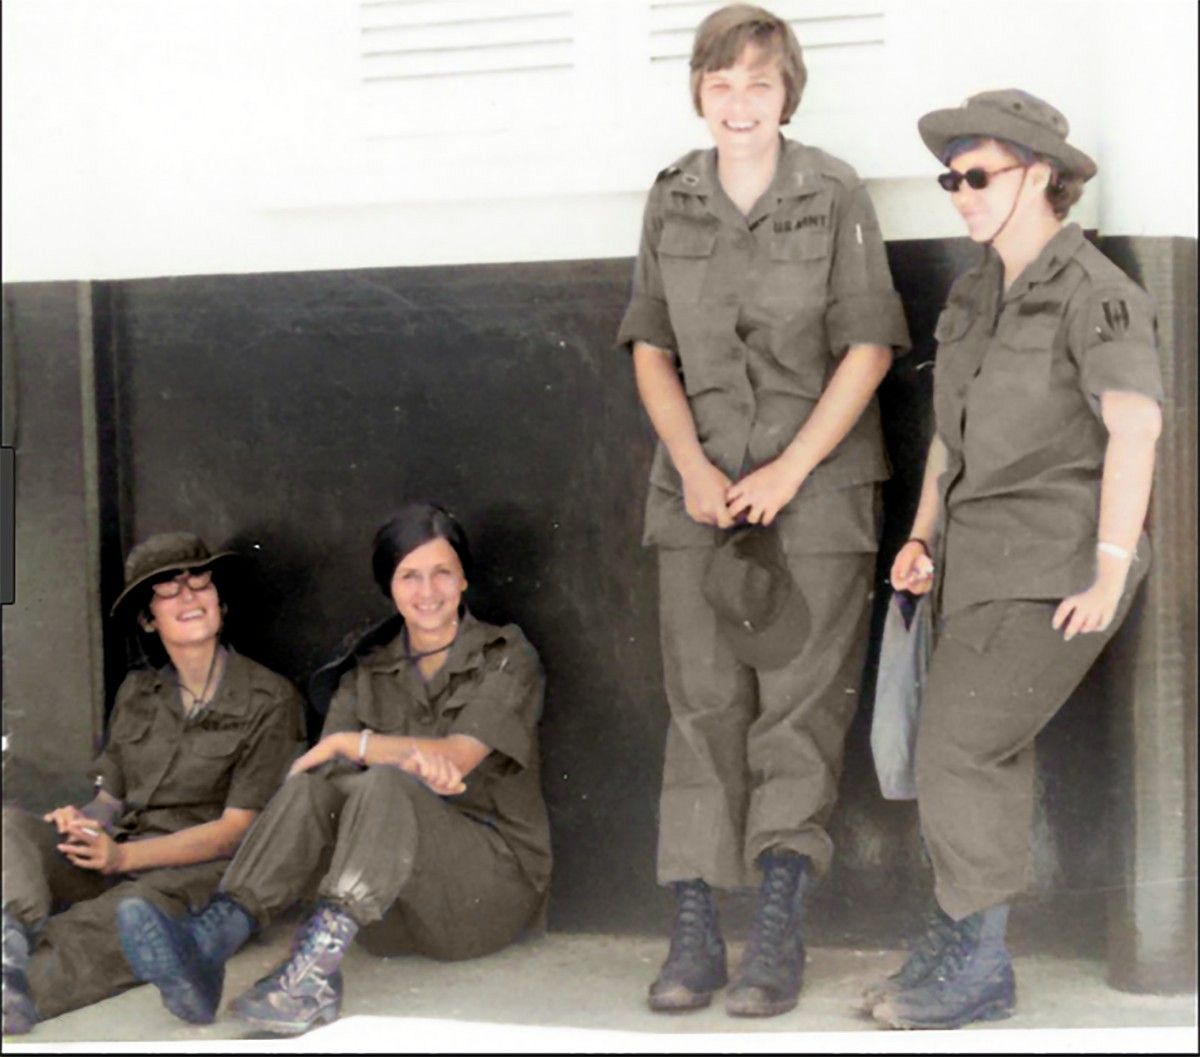 Nurses wore the same jungle fatigues as did the soldiers